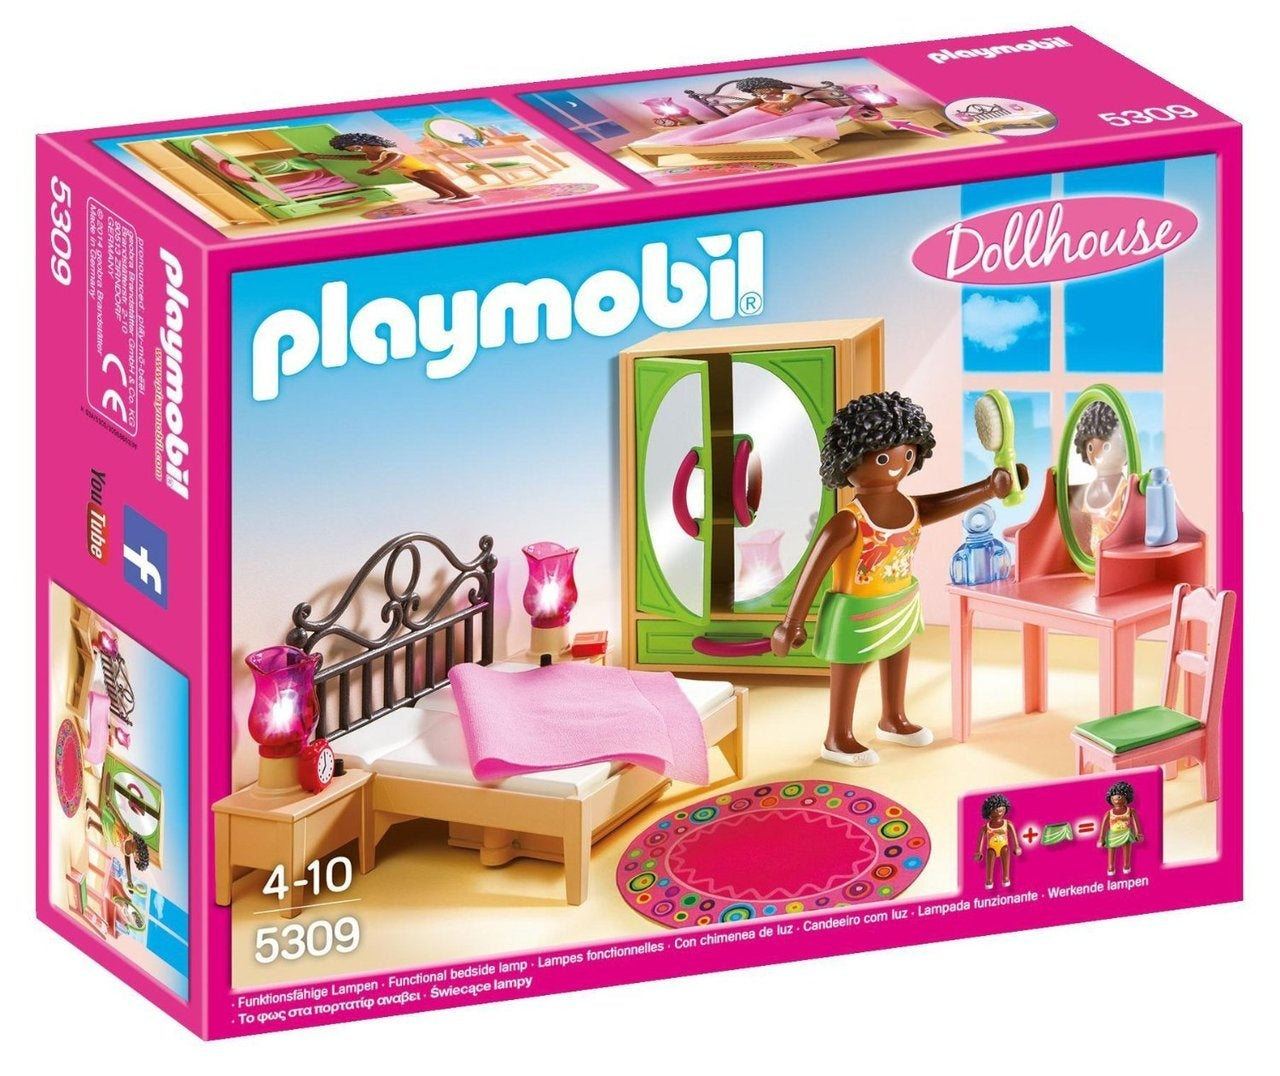 Master Bedroom - Playmobi